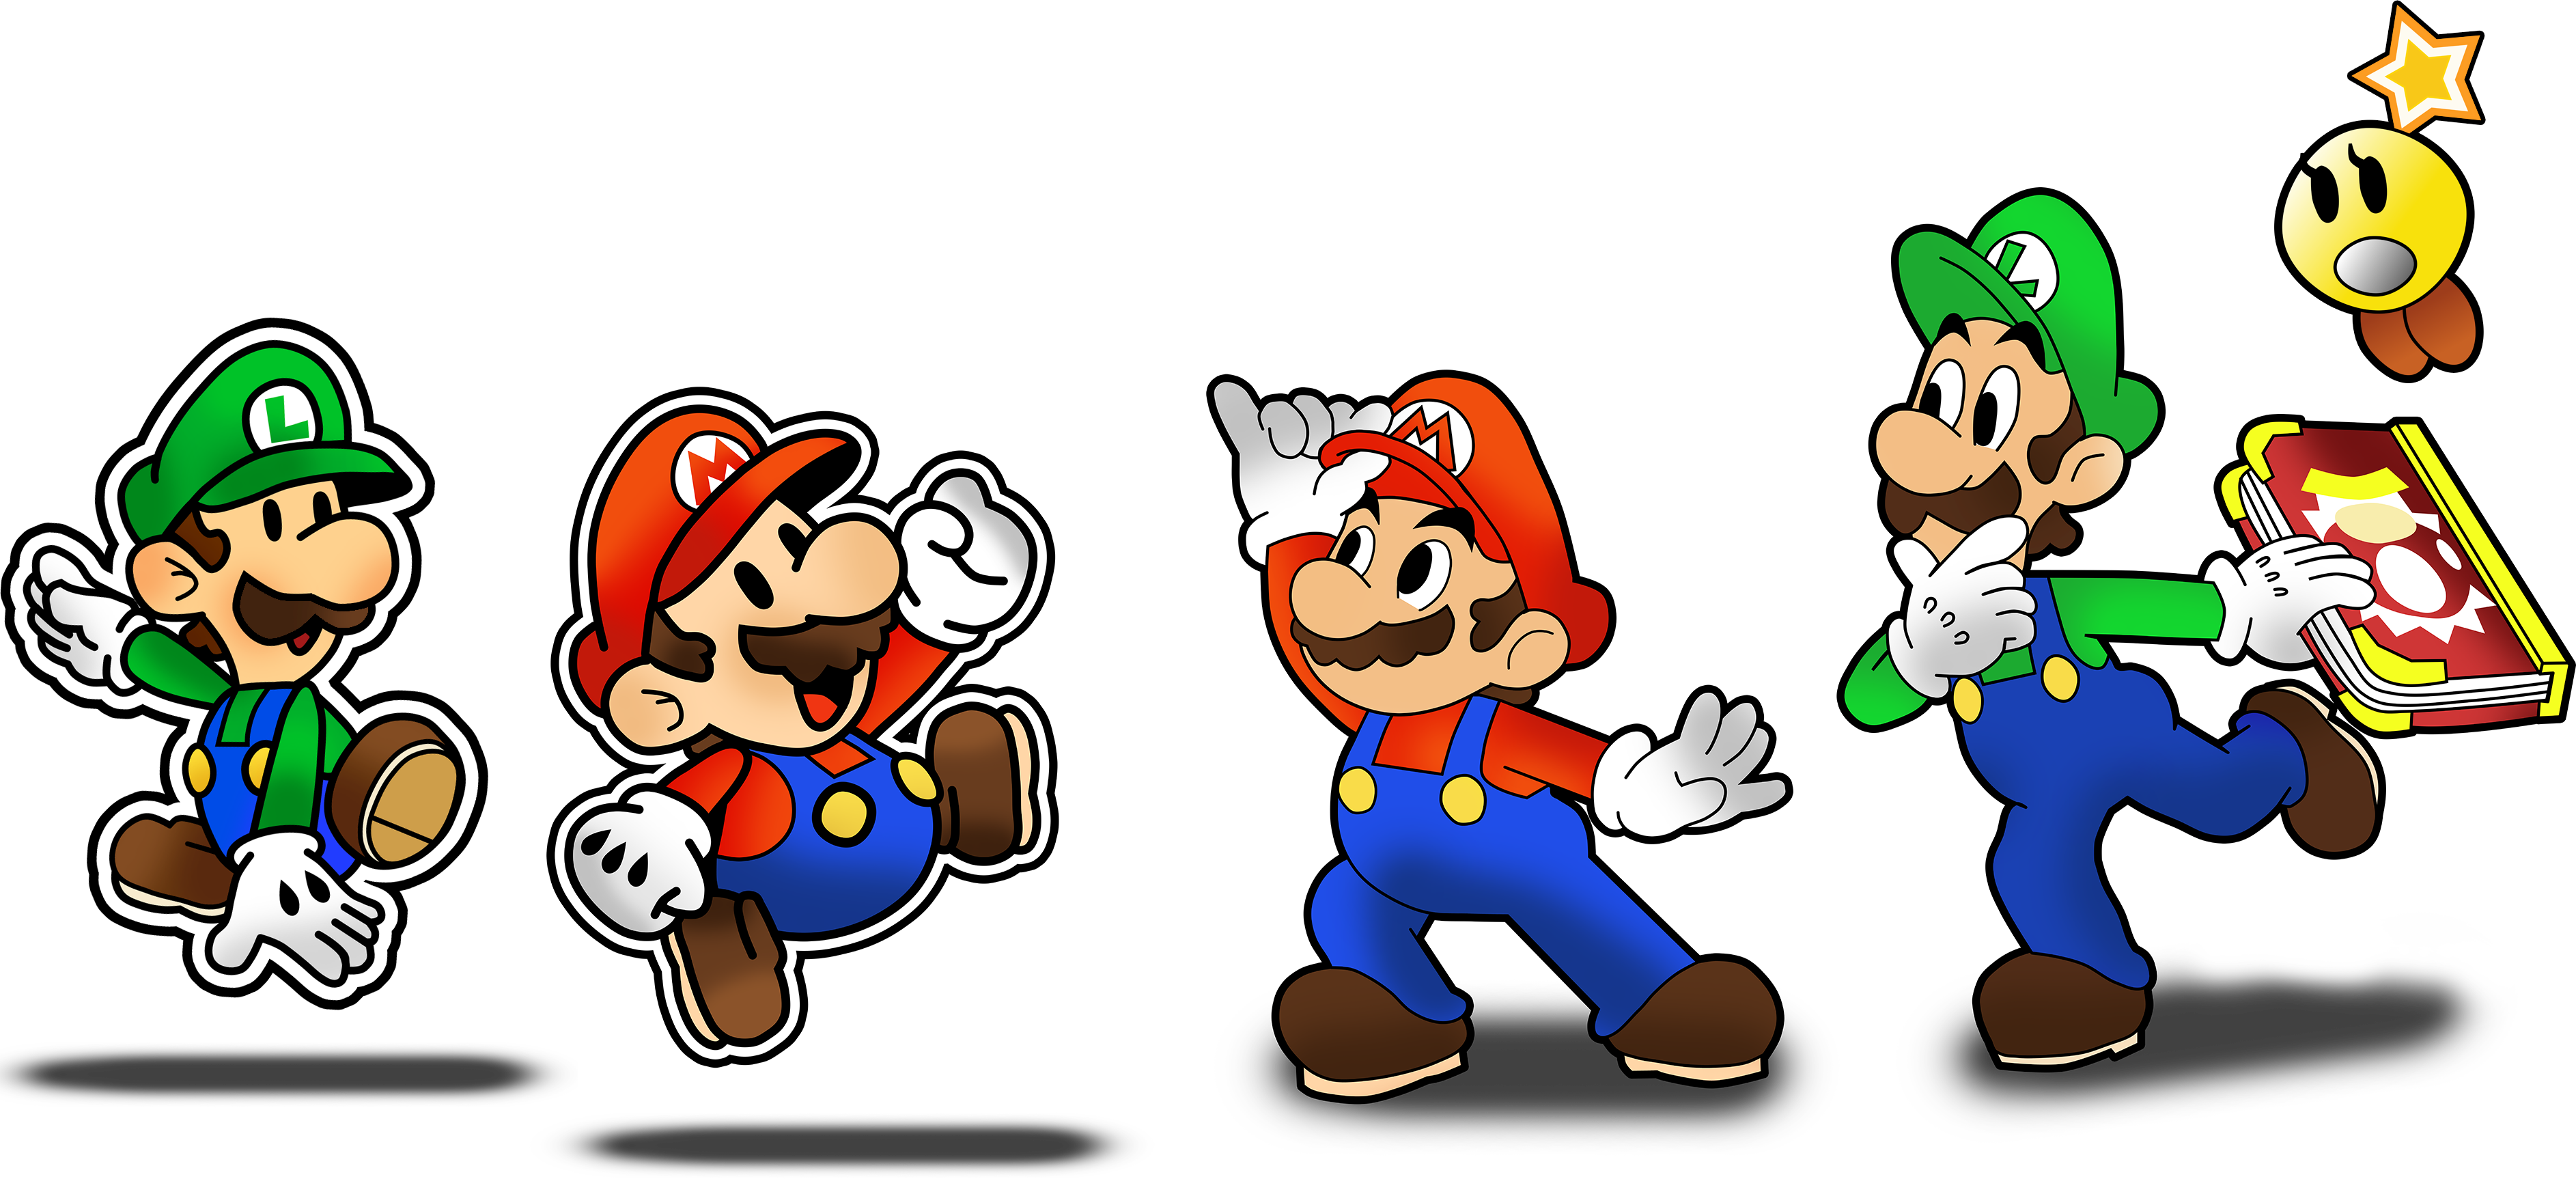 I Recreated Mario S Artwork For This Game In Inkscape Mario